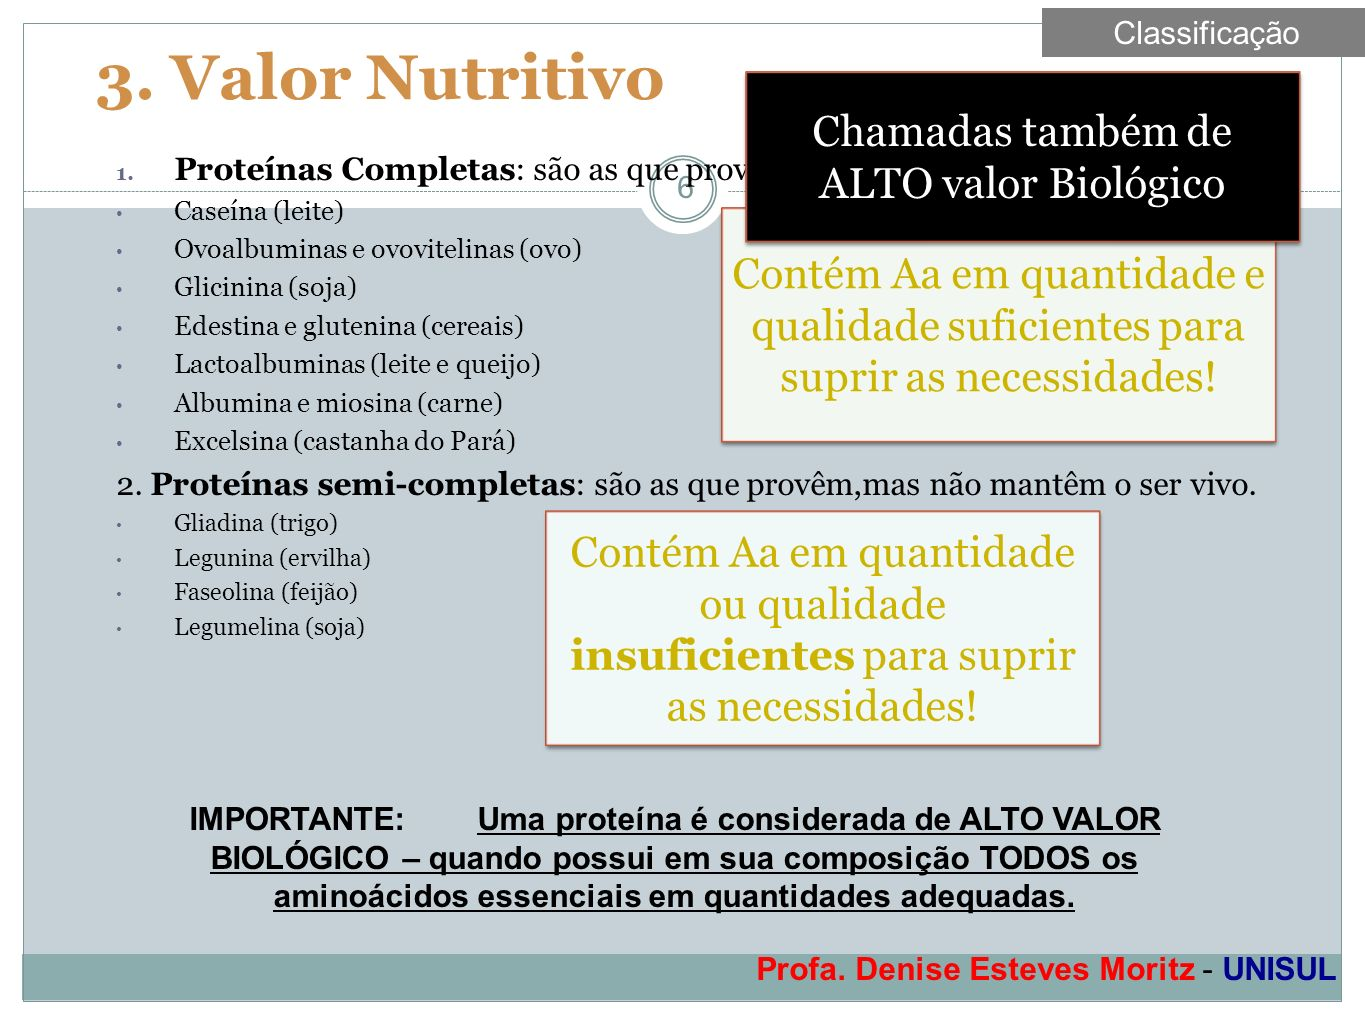 Profa.Denise Esteves Moritz - UNISUL 3. Valor Nutritivo 7 Classificação 3.